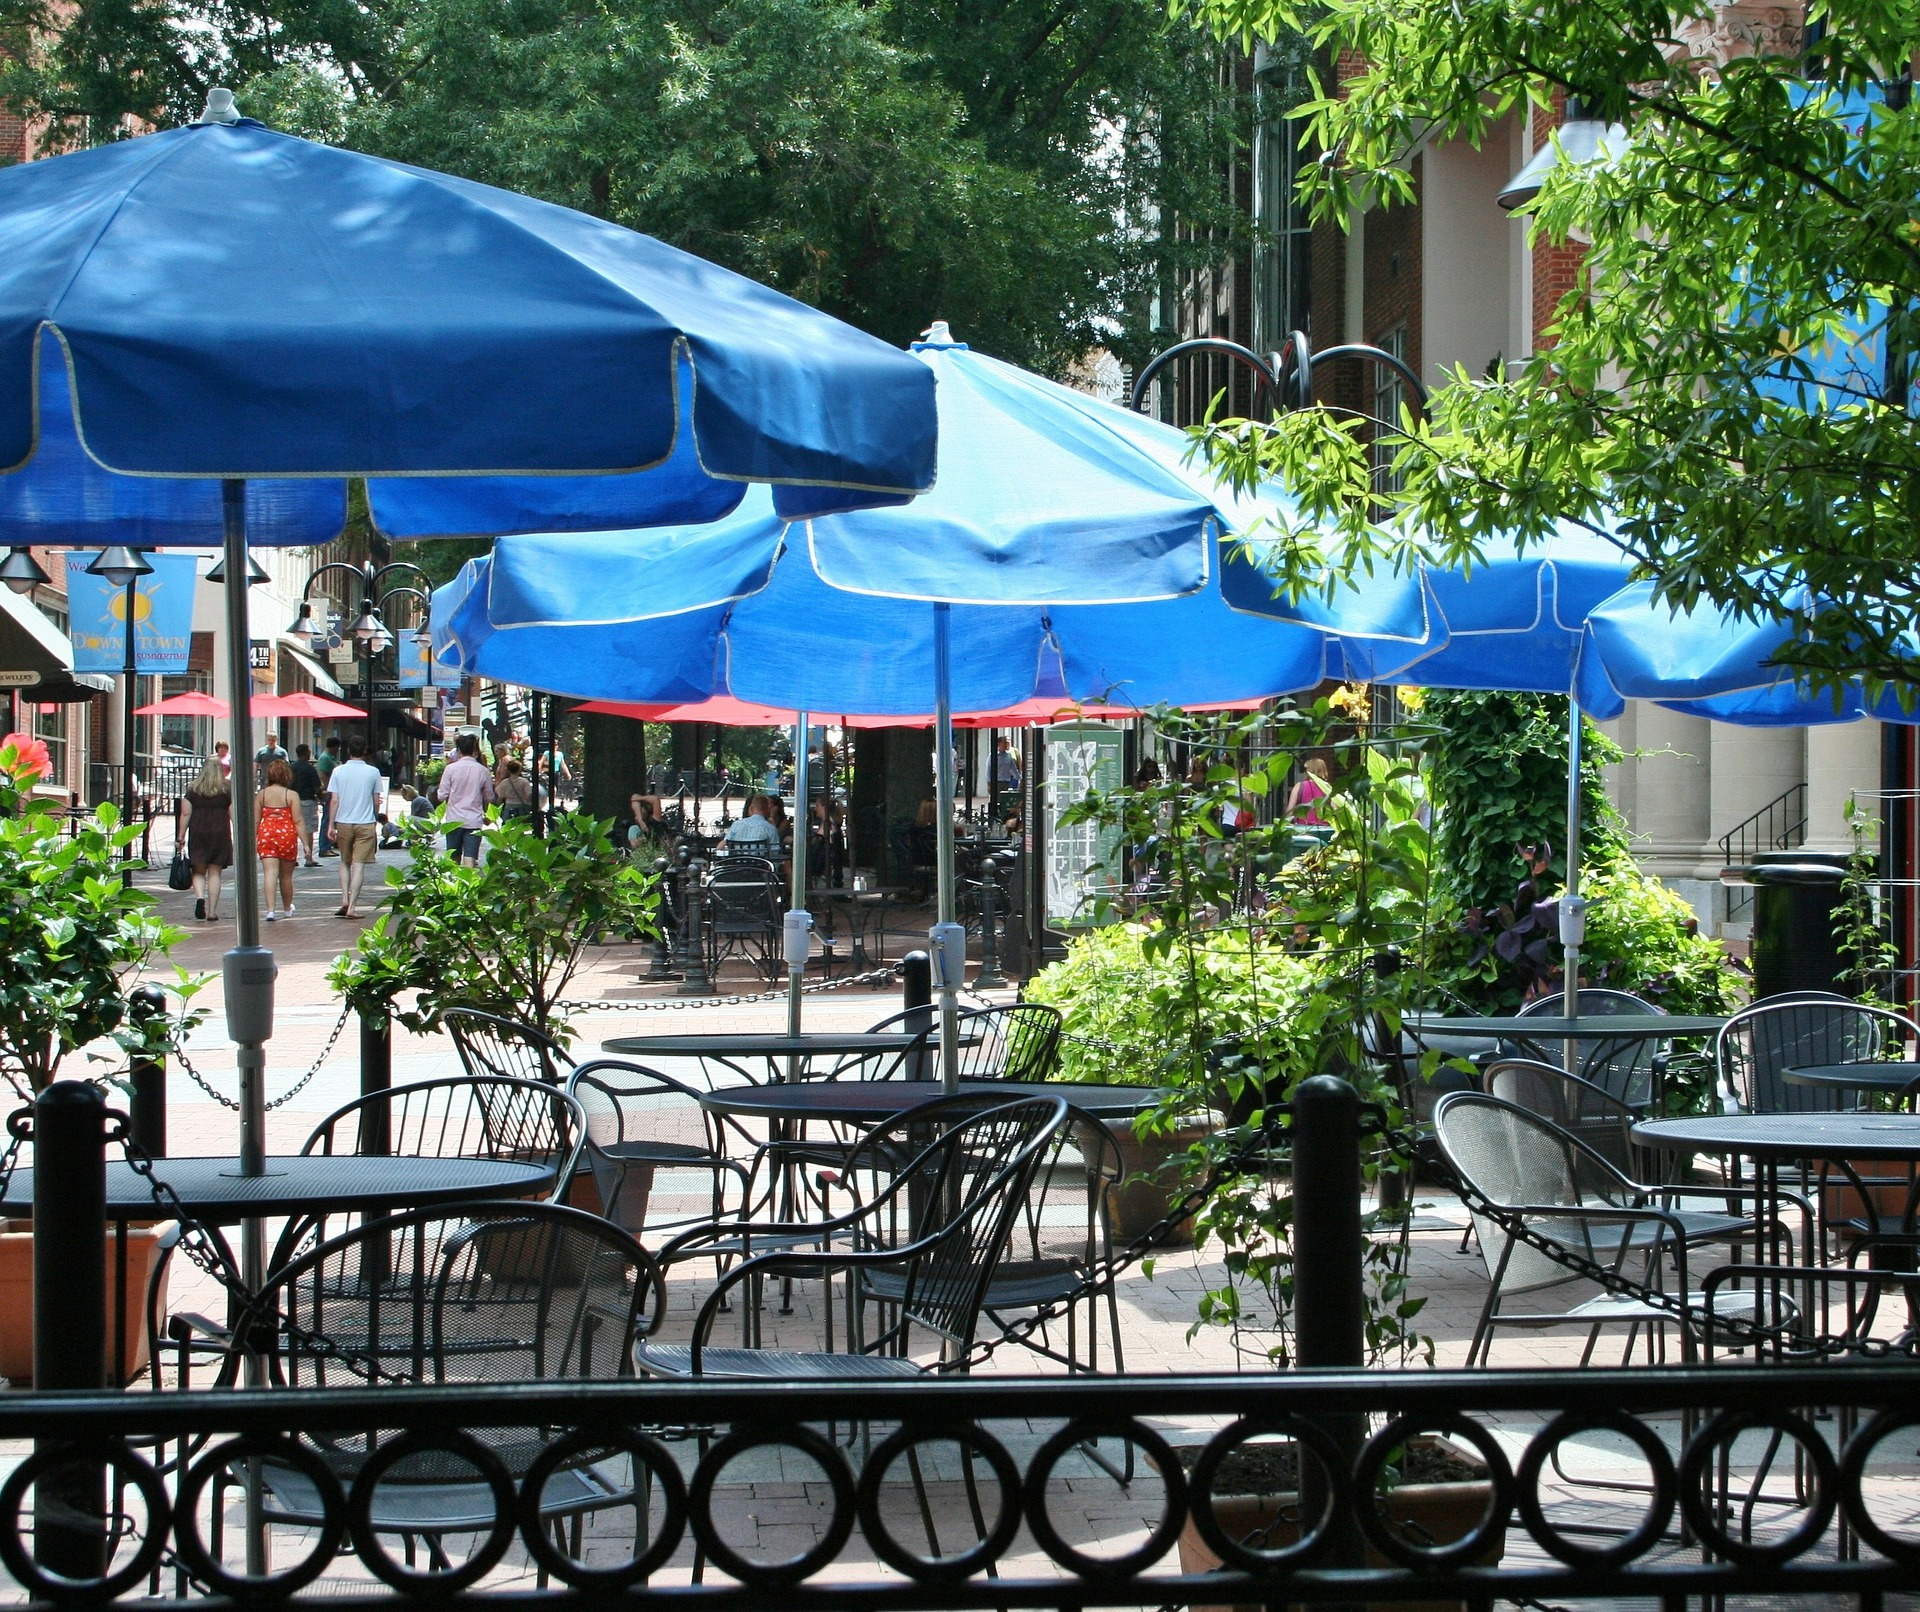 Patio Umbrellas in Sidewalk Cafe